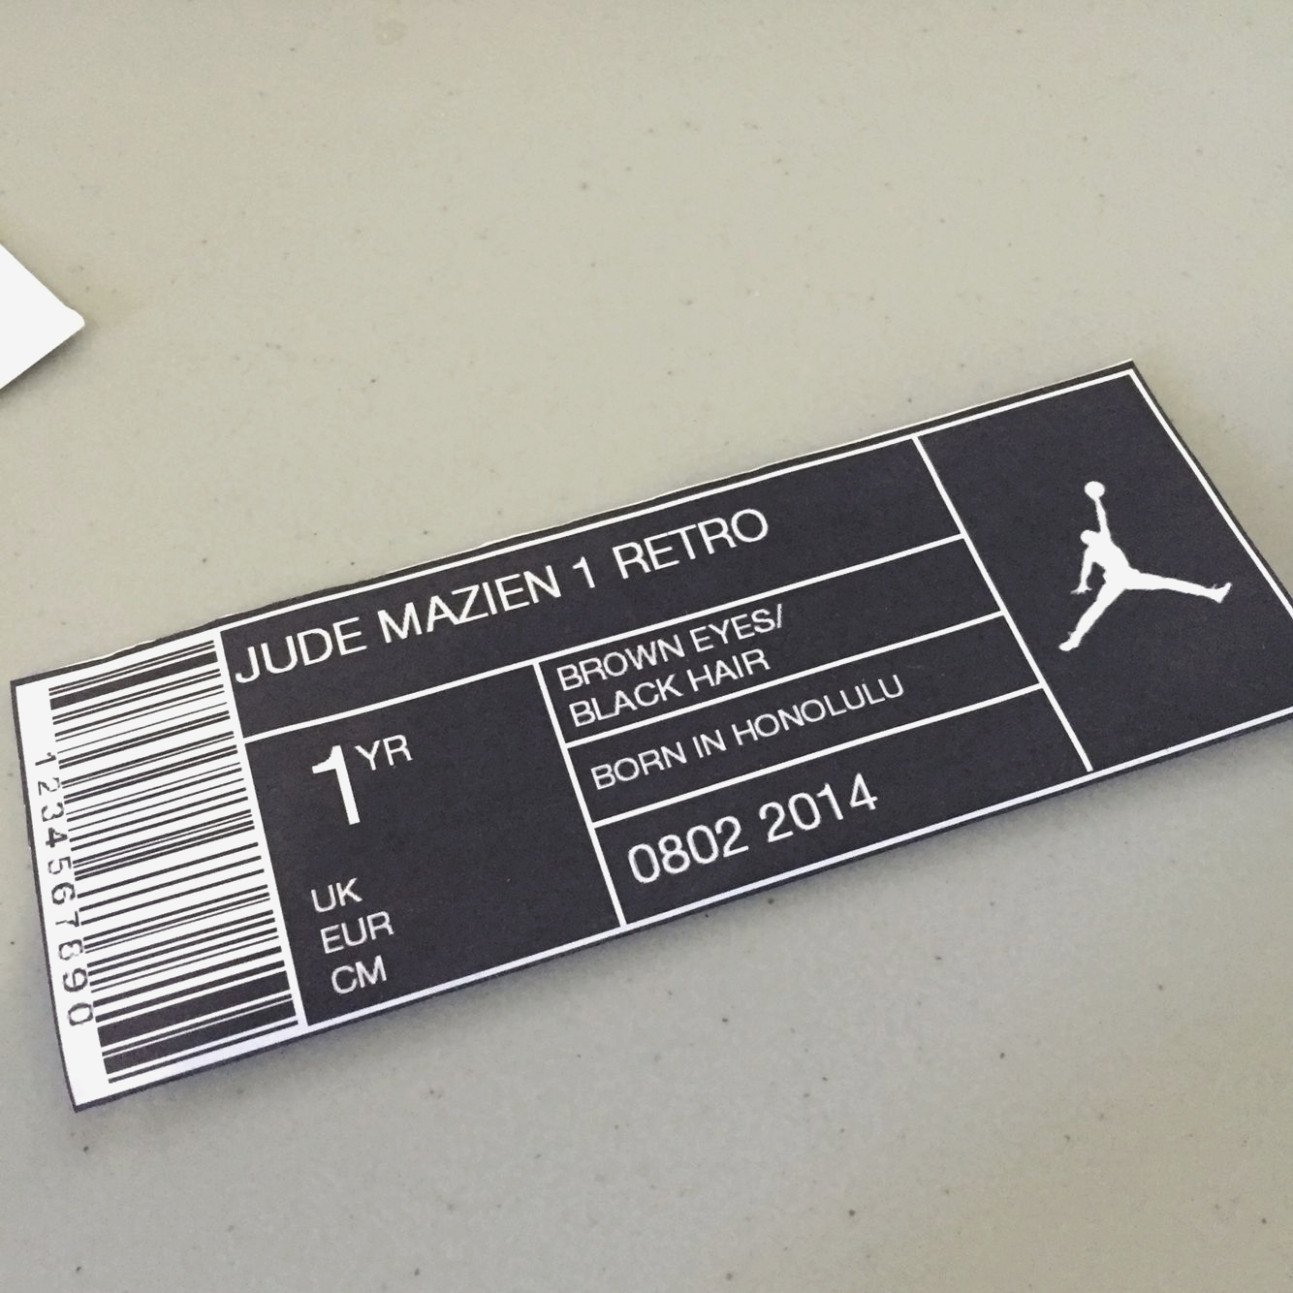 Nike Box Label Template the Ultimate Revelation